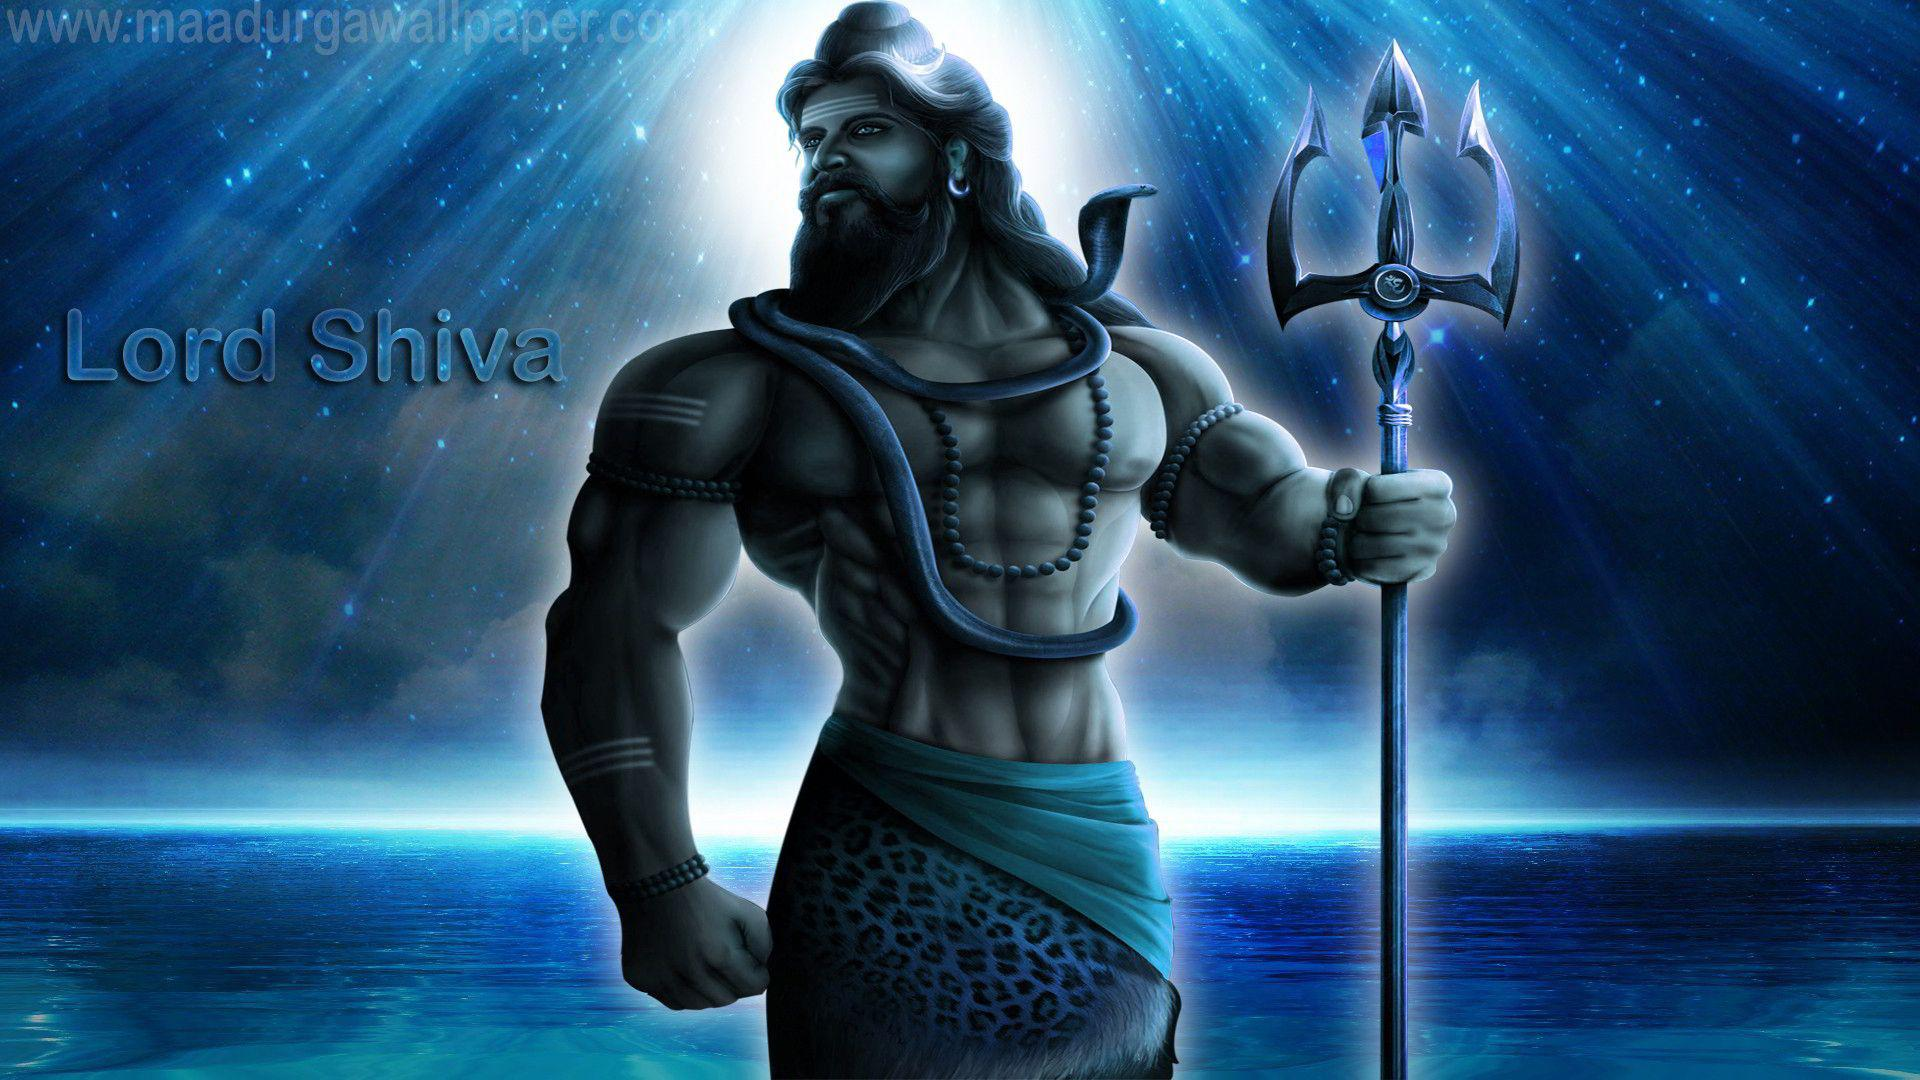 Lord Shiva Hd Wallpapers For Desktop Wallpapers